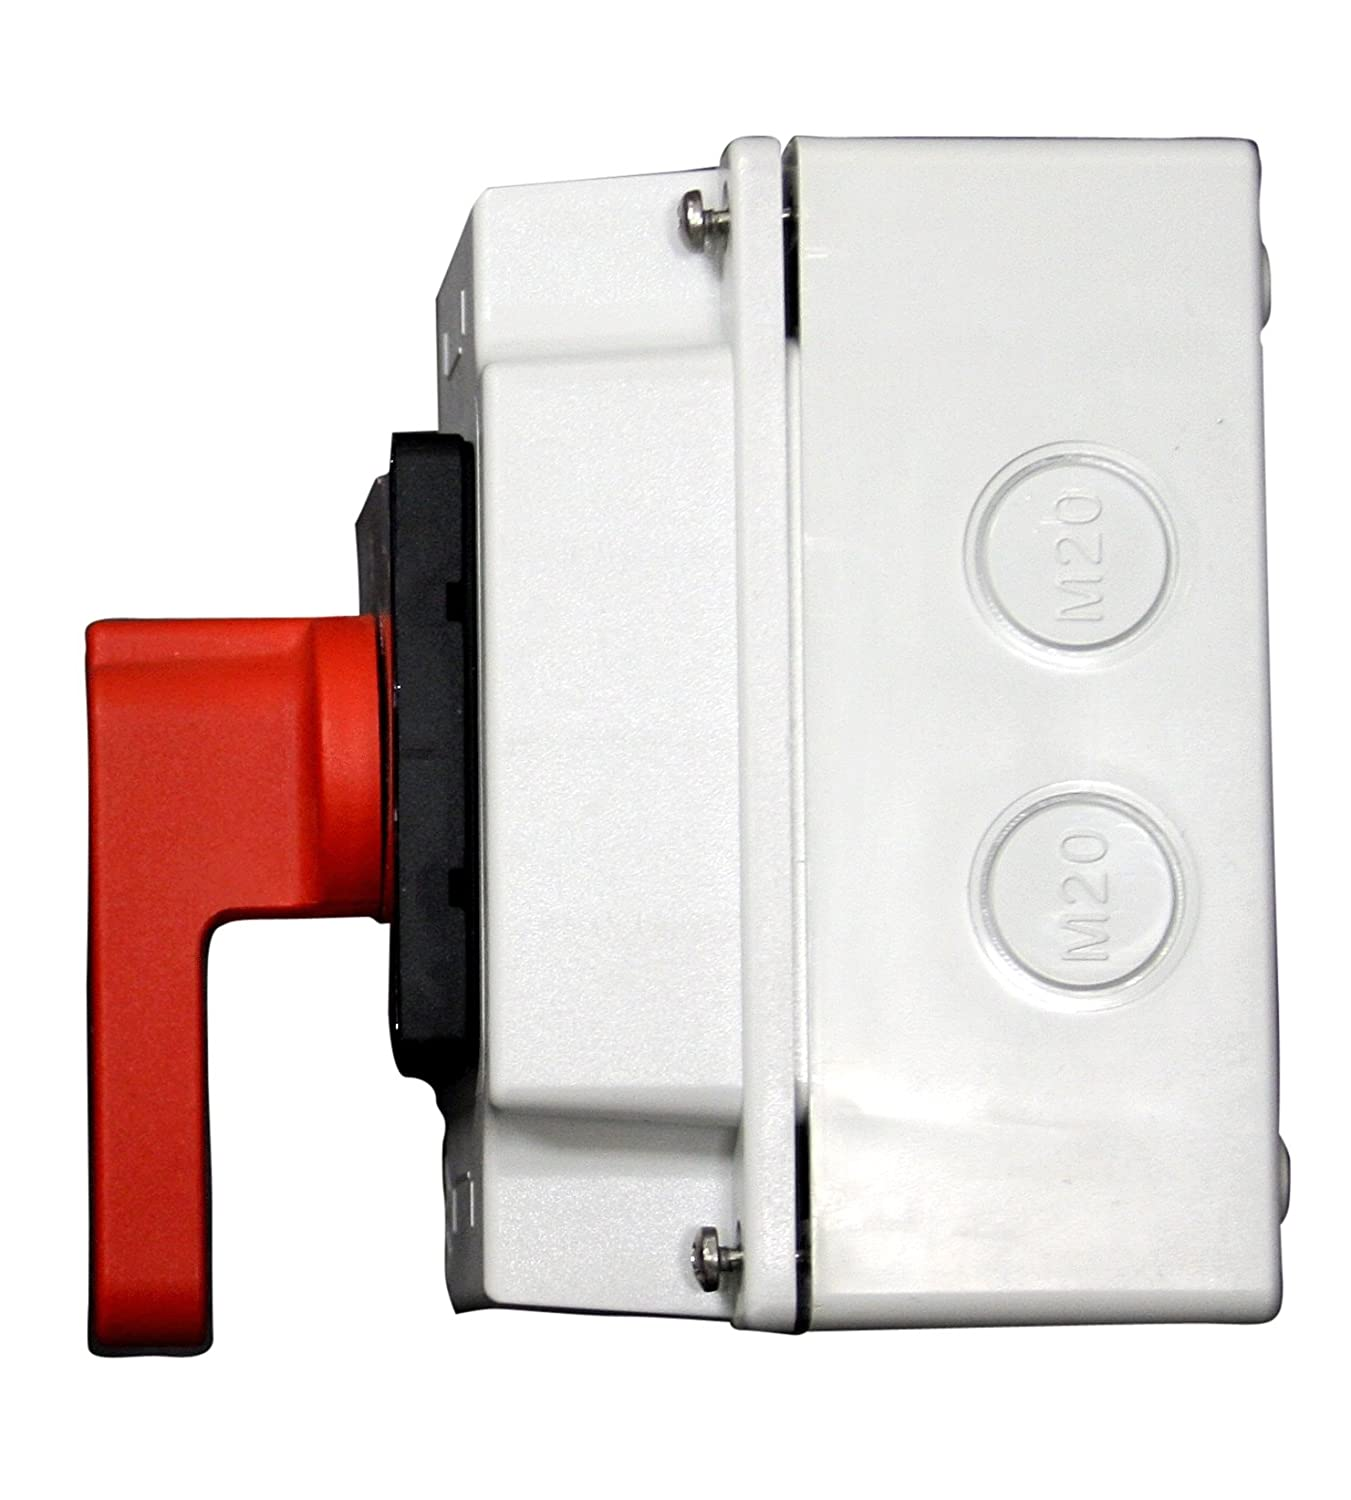 Amazon.com : BH-USA Bremas Brand Boat Lift Switch Spring : Sports & Outdoors